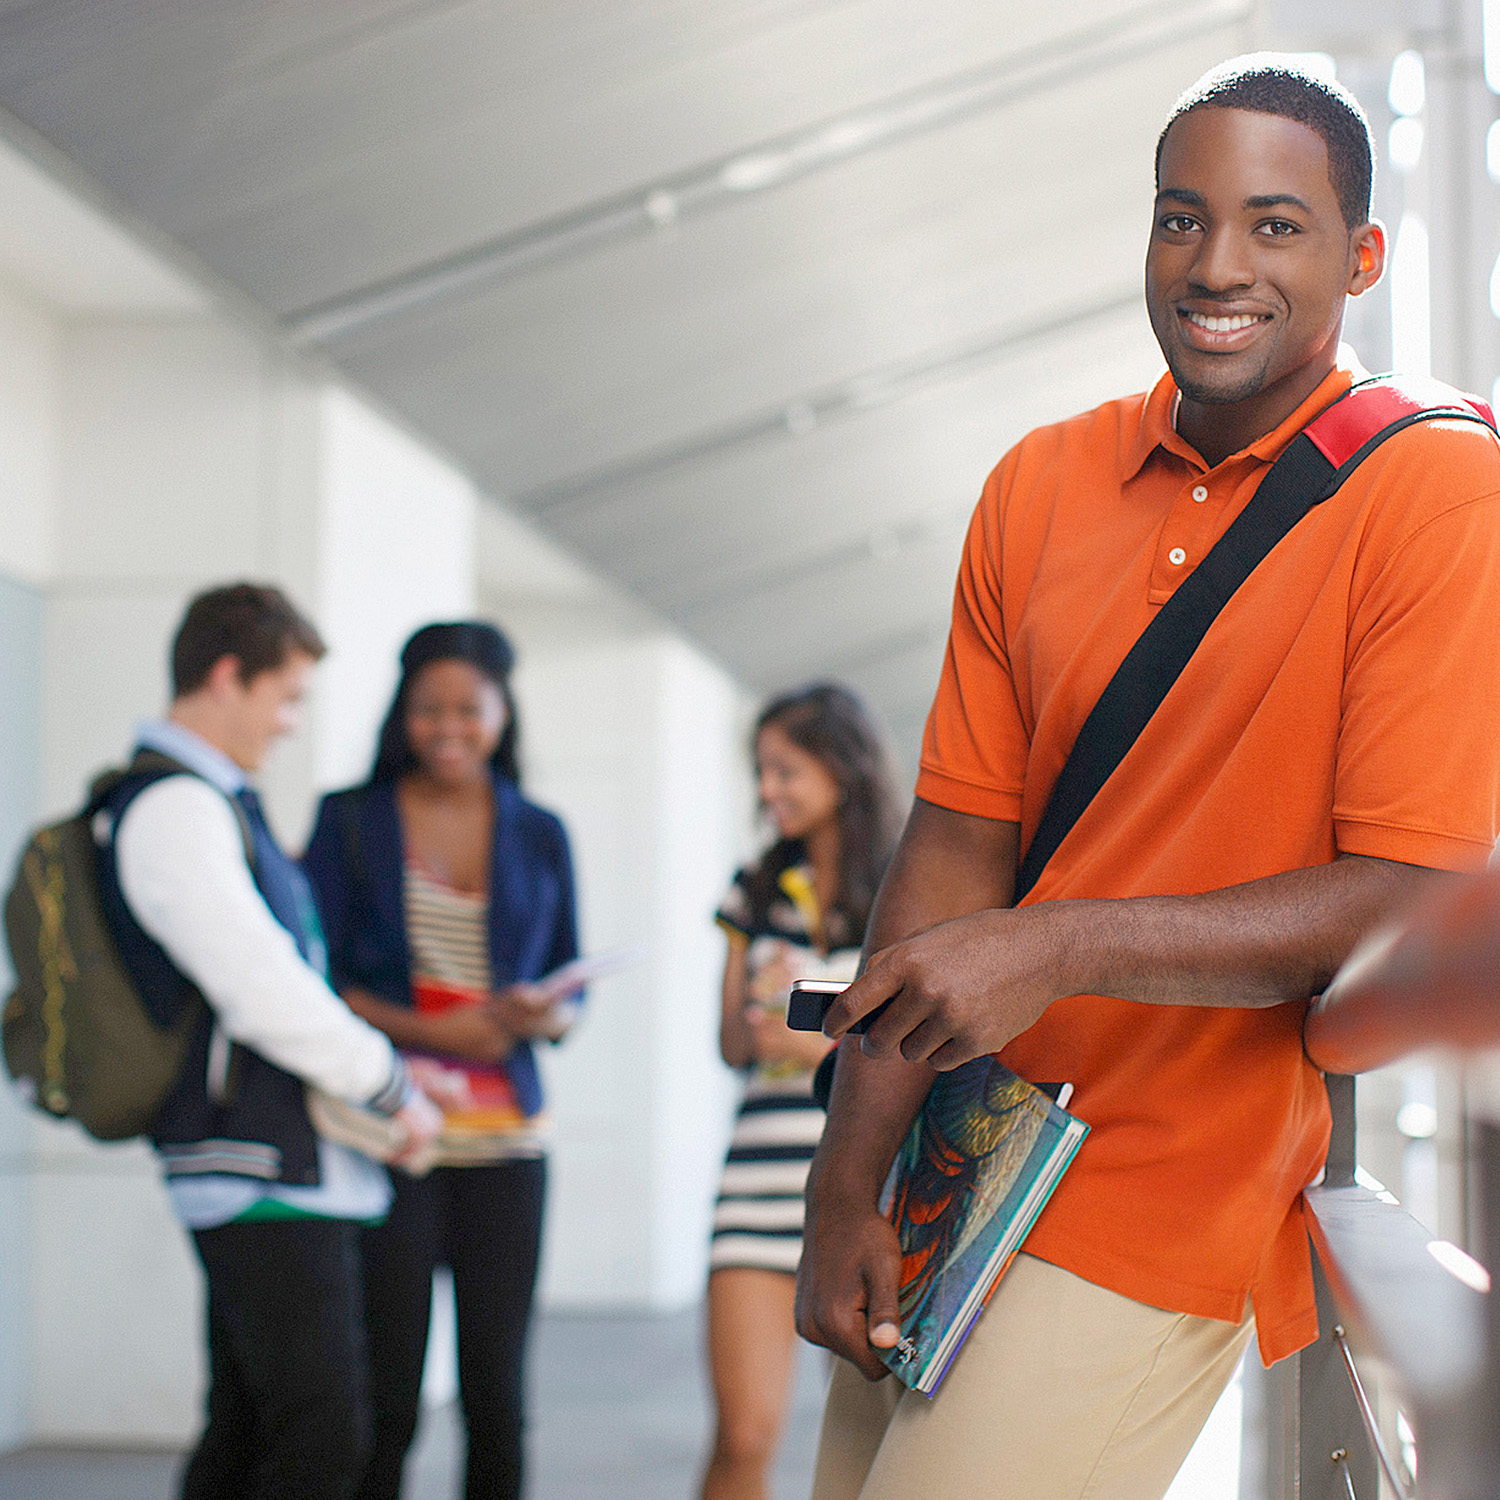 Smiling young man in high school hallway, three other students in background